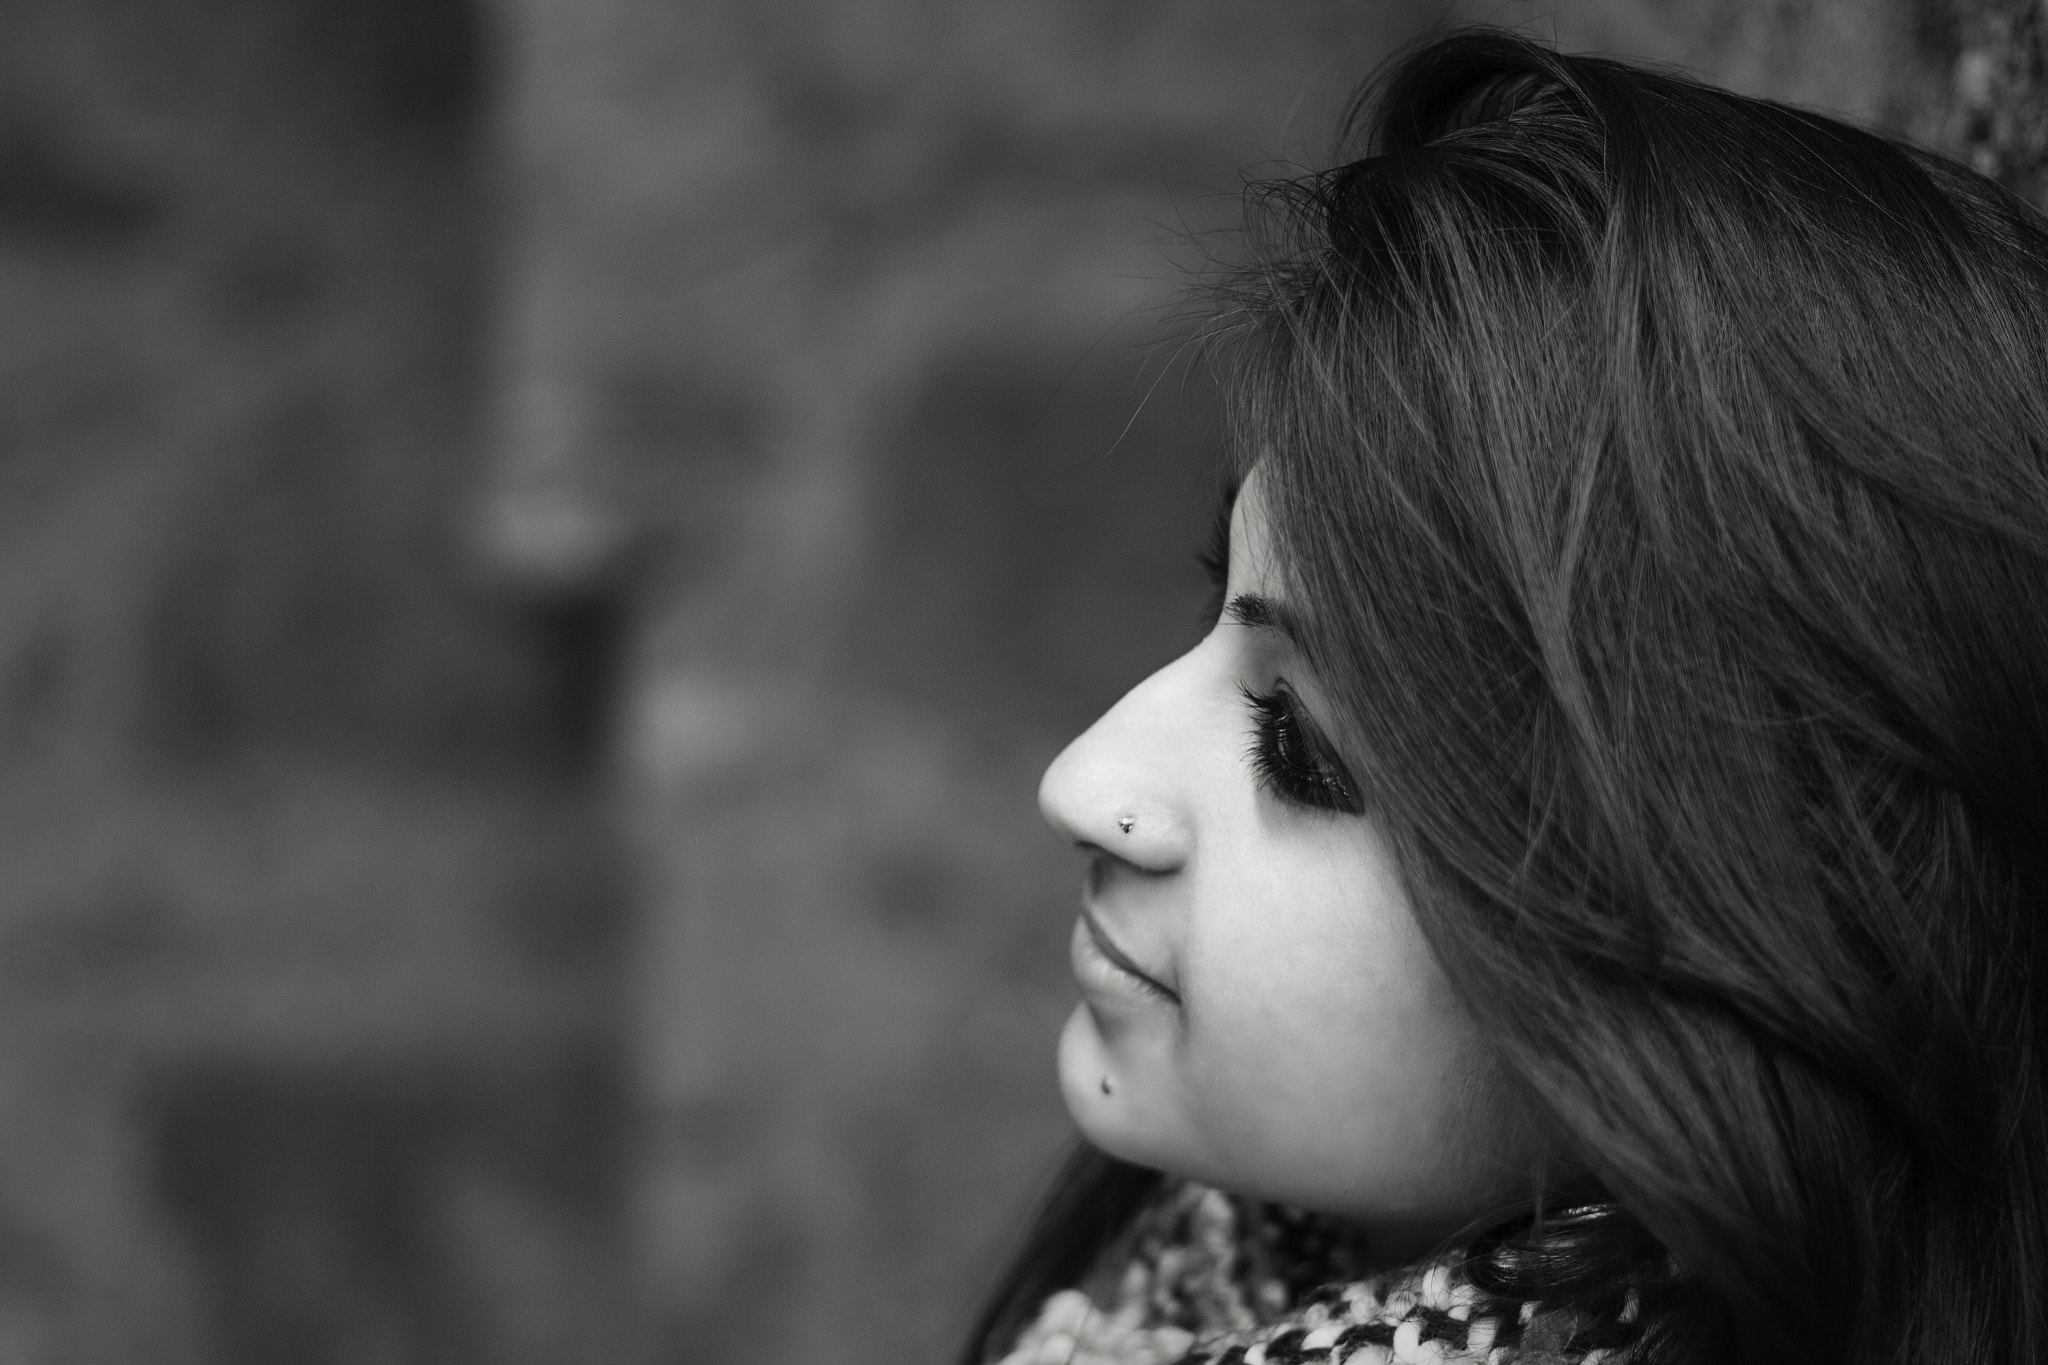 Photograph The better side of her! by Kunal Khurana on 500px